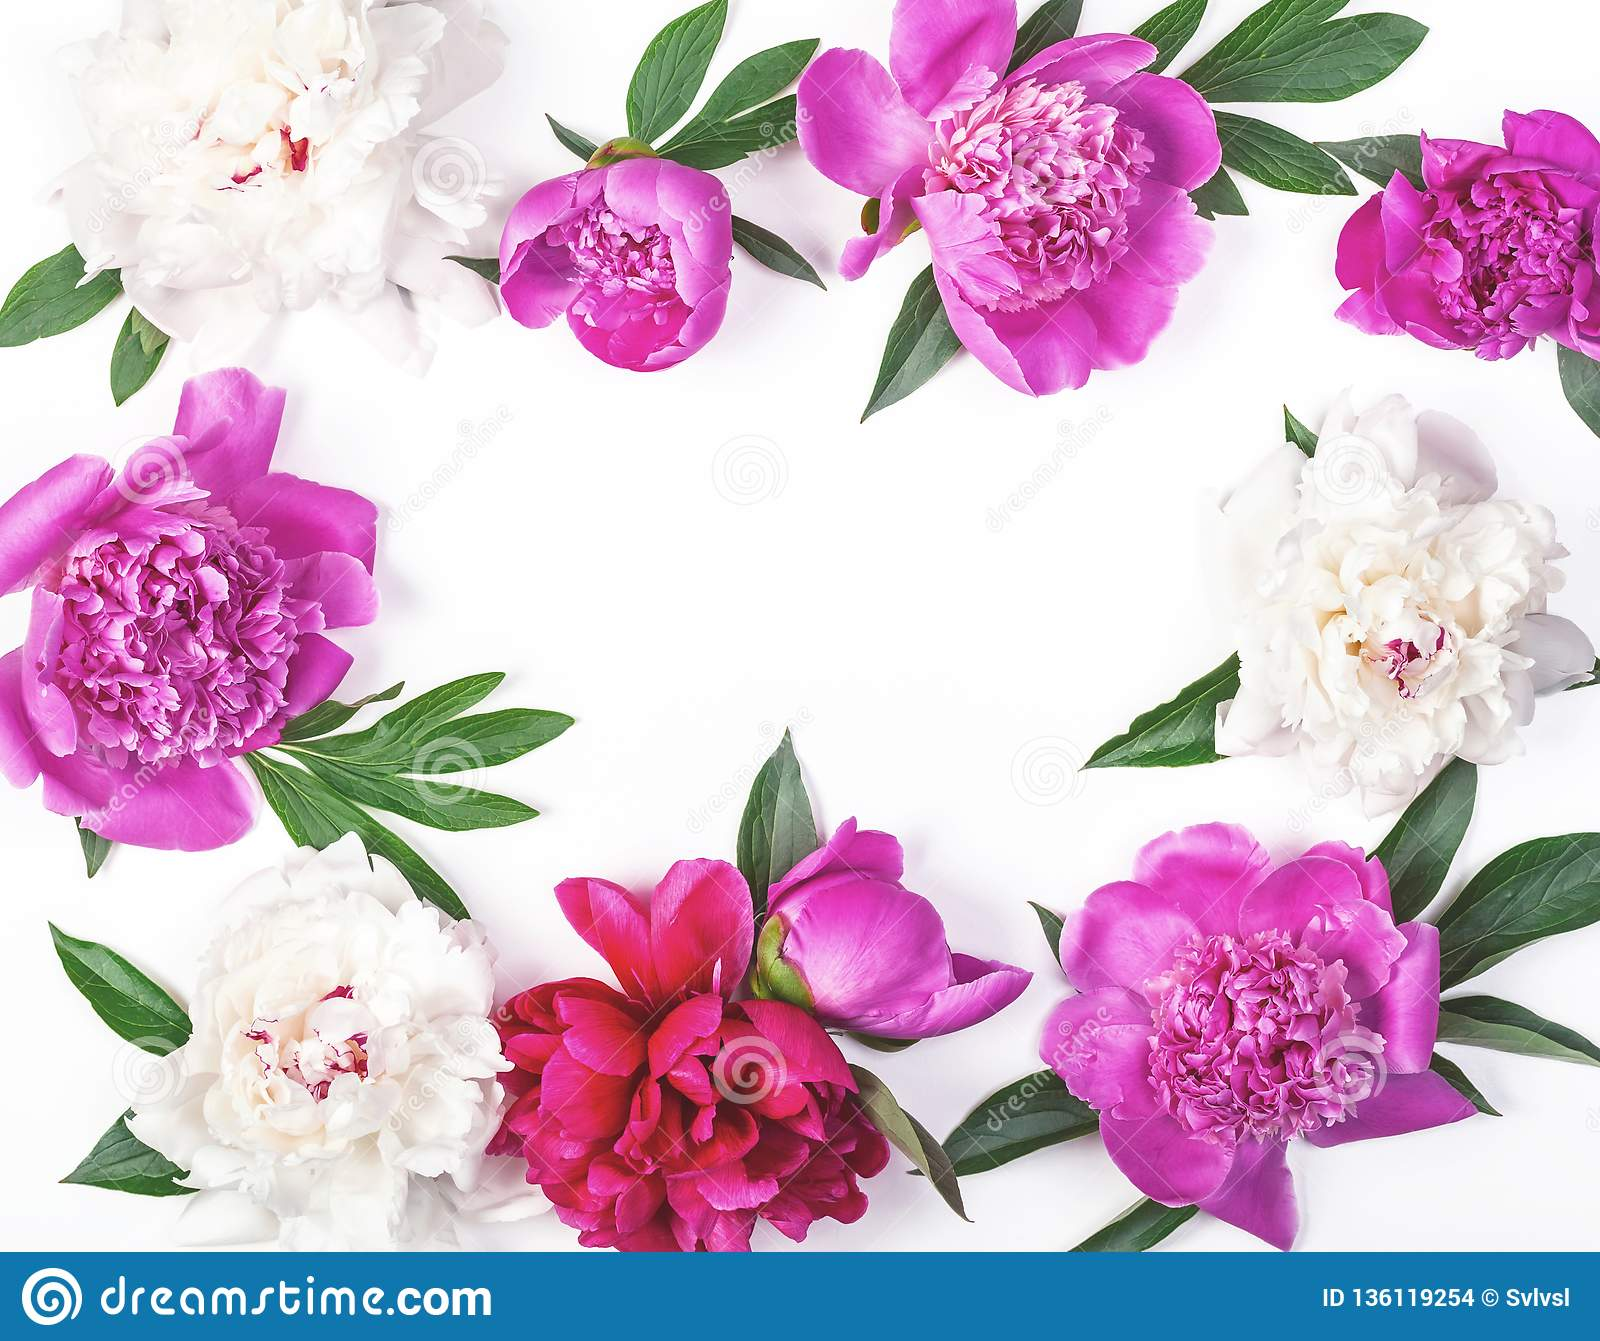 Floral frame made of pink and white peony flowers and leaves isolated on white background. Flat lay